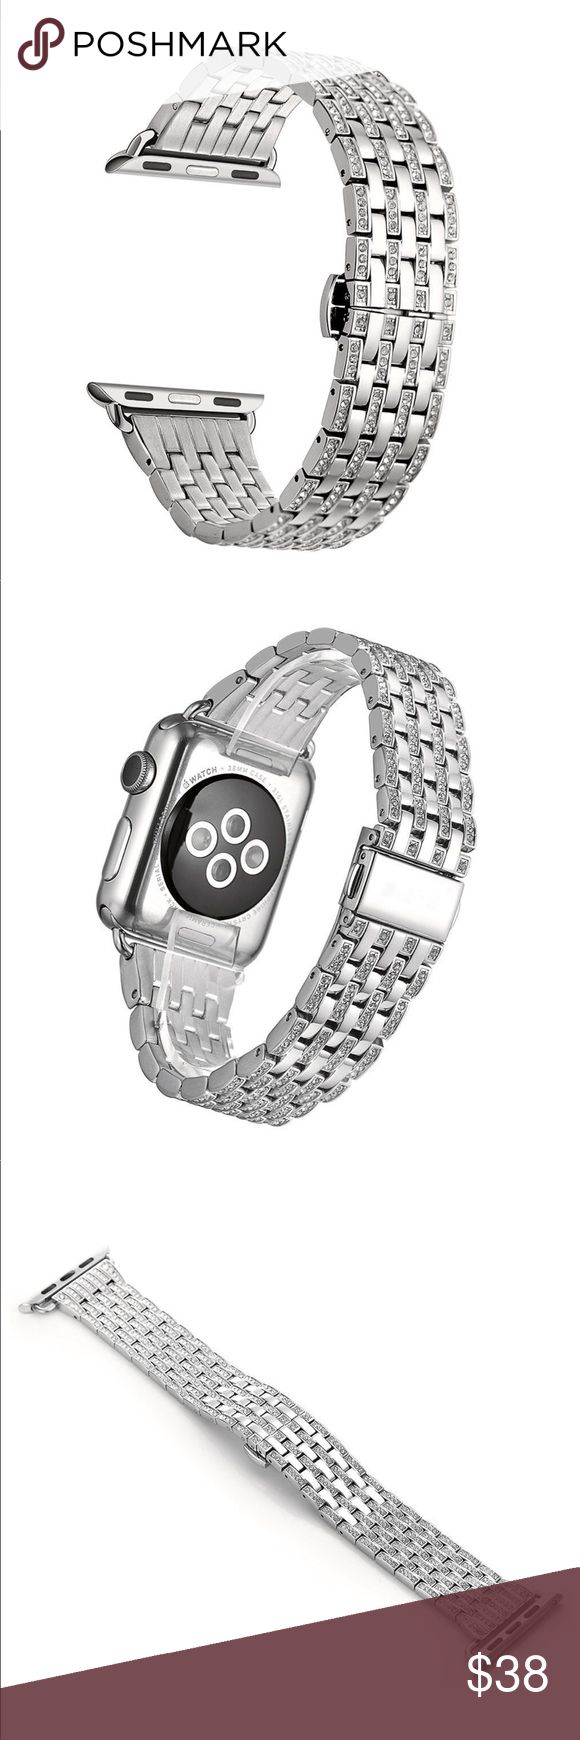 38mm Alloy Crystal Rhinestone Diamond Watch Band Apple Watch not included. Unique luxury design,world first Crystal alloy watch band for apple watch Apple Watch band with metal adapter, replace 38mm Apple watch band easily and directly,and also a link removal kit was sent to adjust to the suitable size. Personalize your iWatch with this refined strap compared to Apple ones,but more attractive cost;more important,it is unique Durable and elegant Crystal and stainless steel,pretty dressy…